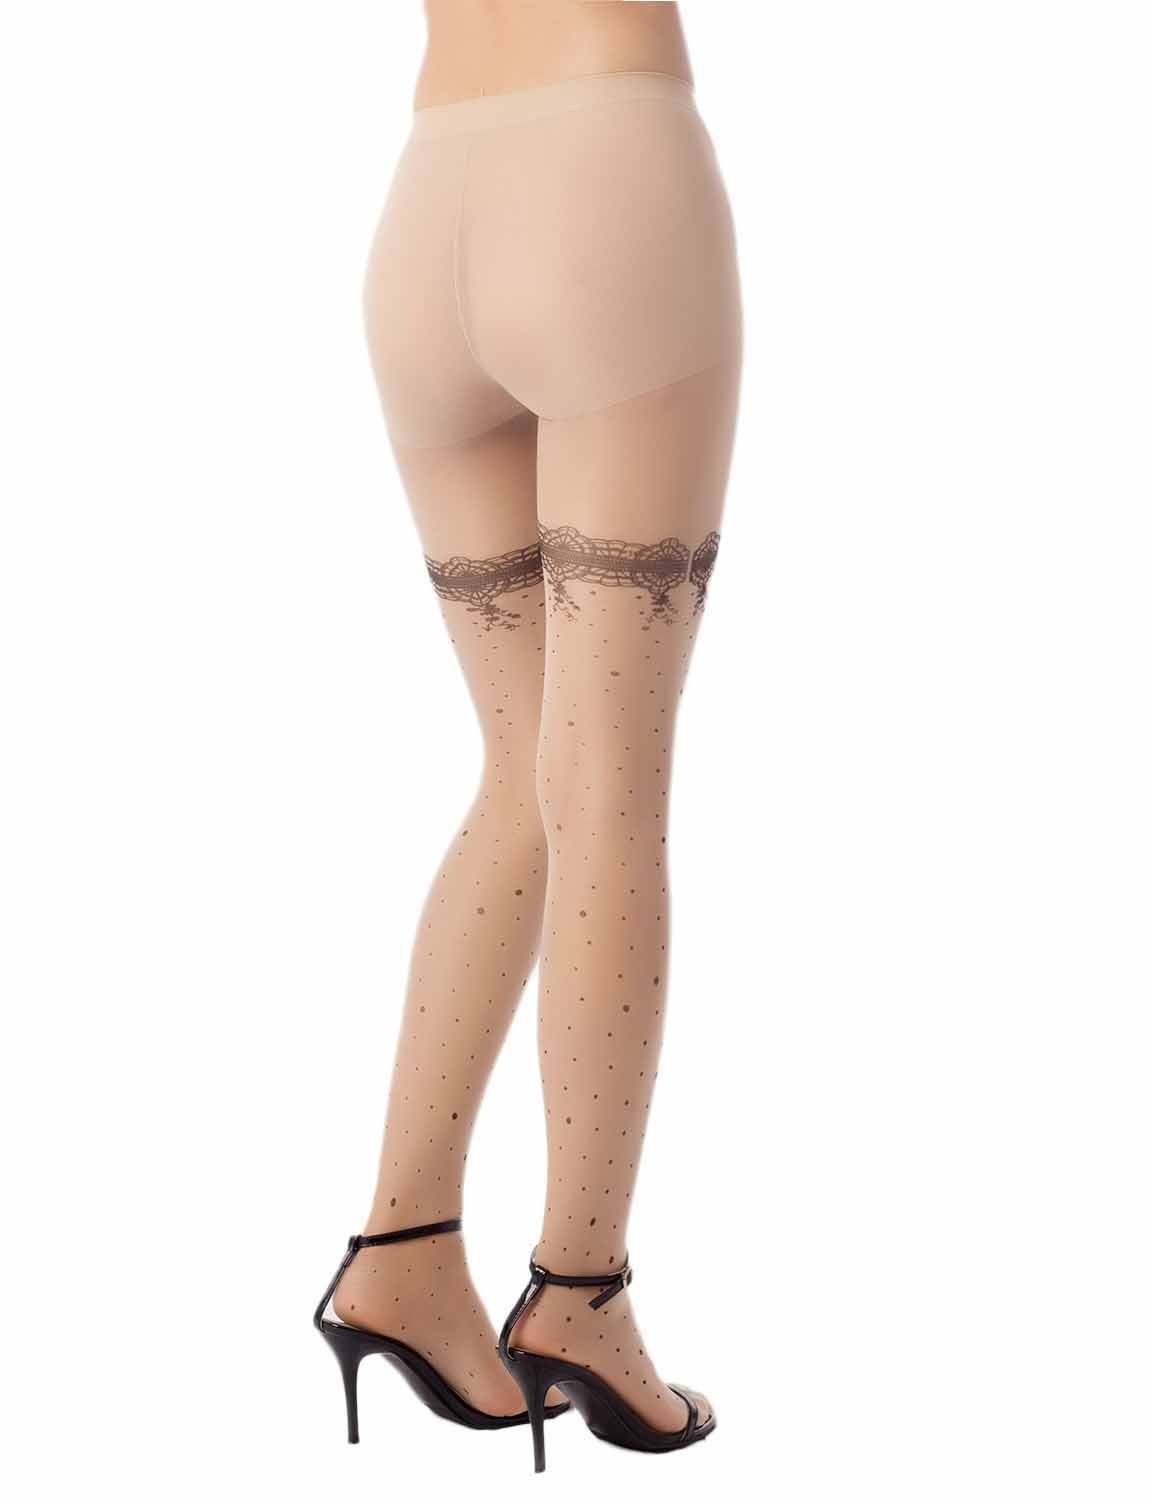 Women's Strap Lace Snowflakes Seamless 5 DEN Ultra Sheer Tights Pantyhose, Size: M-L, Cream